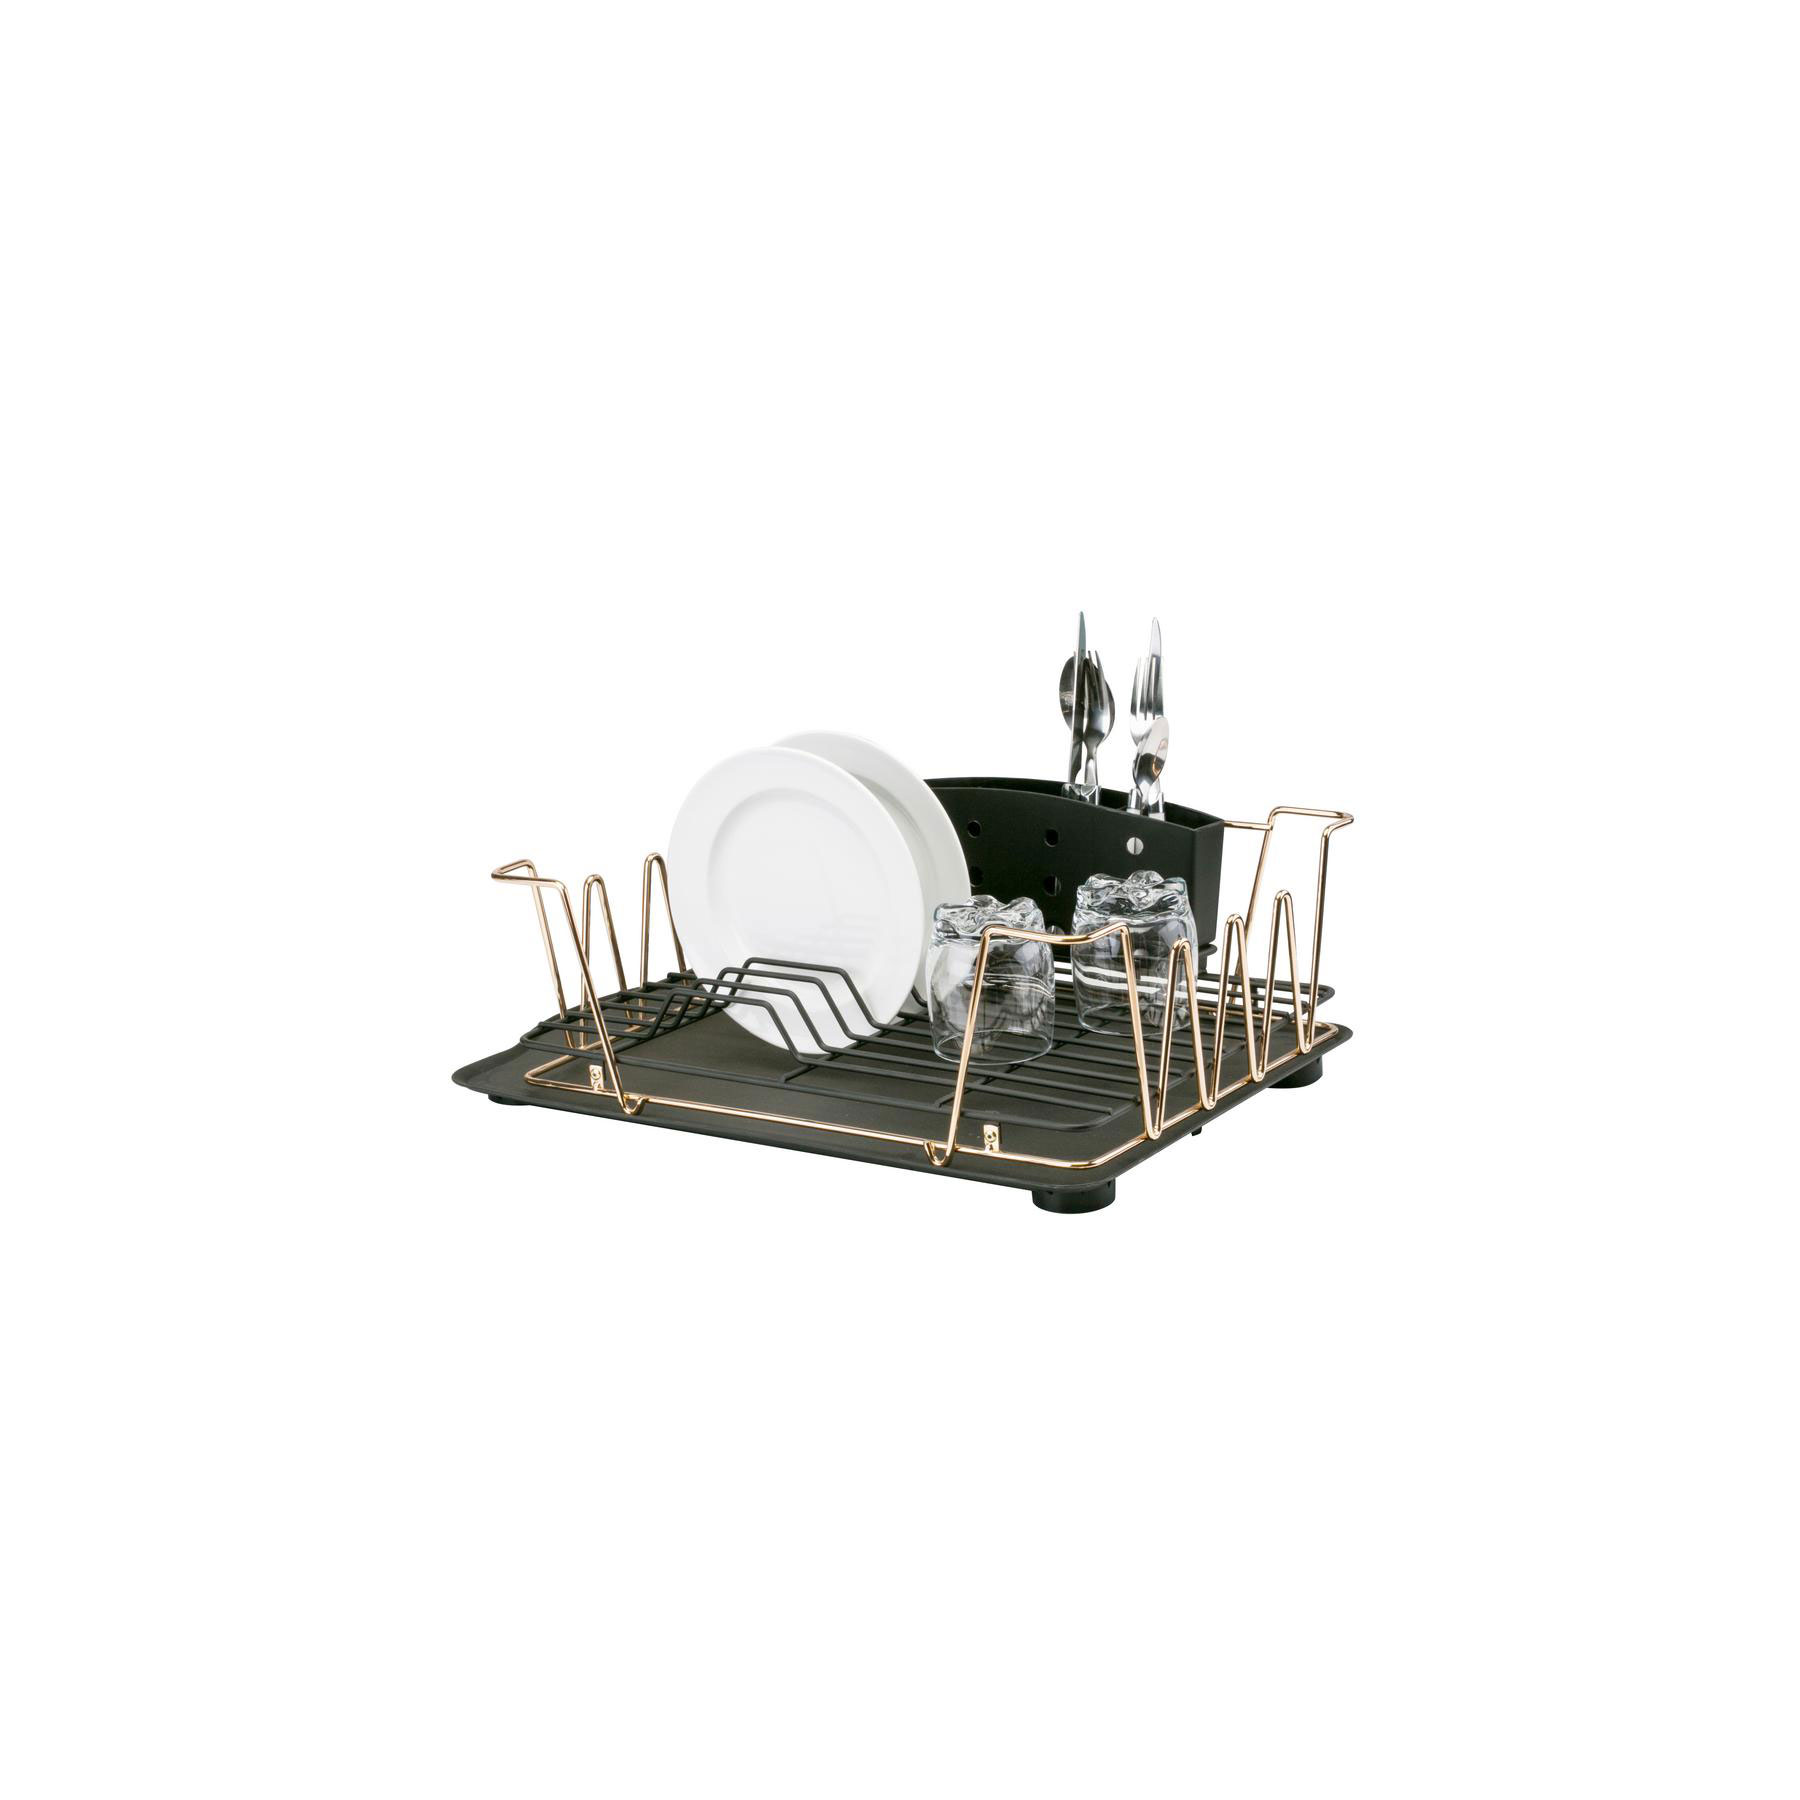 Macbeth Contemporary 3-Piece Rose Gold Dish Rack Set